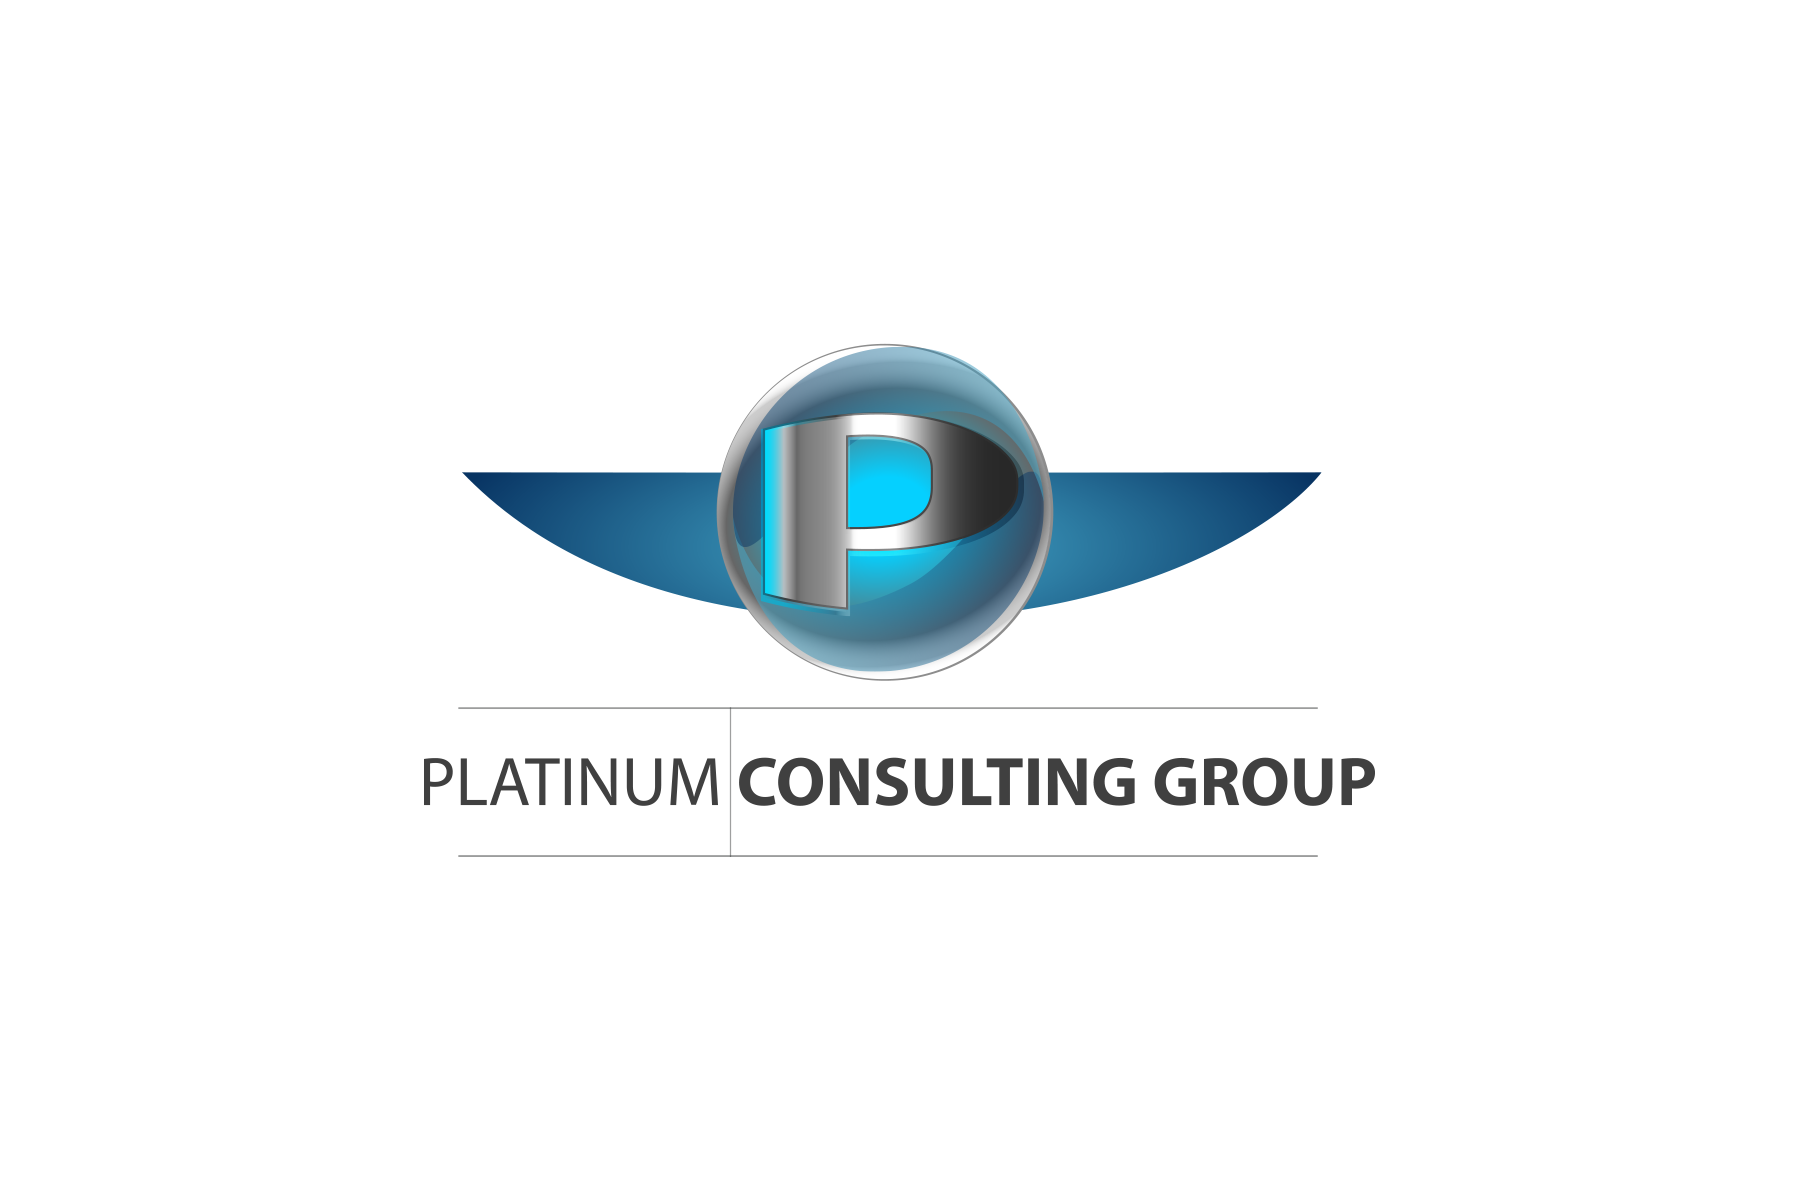 Logo Design by Rozsa Matyas - Entry No. 68 in the Logo Design Contest Captivating Logo Design for Platinum Consulting Group.